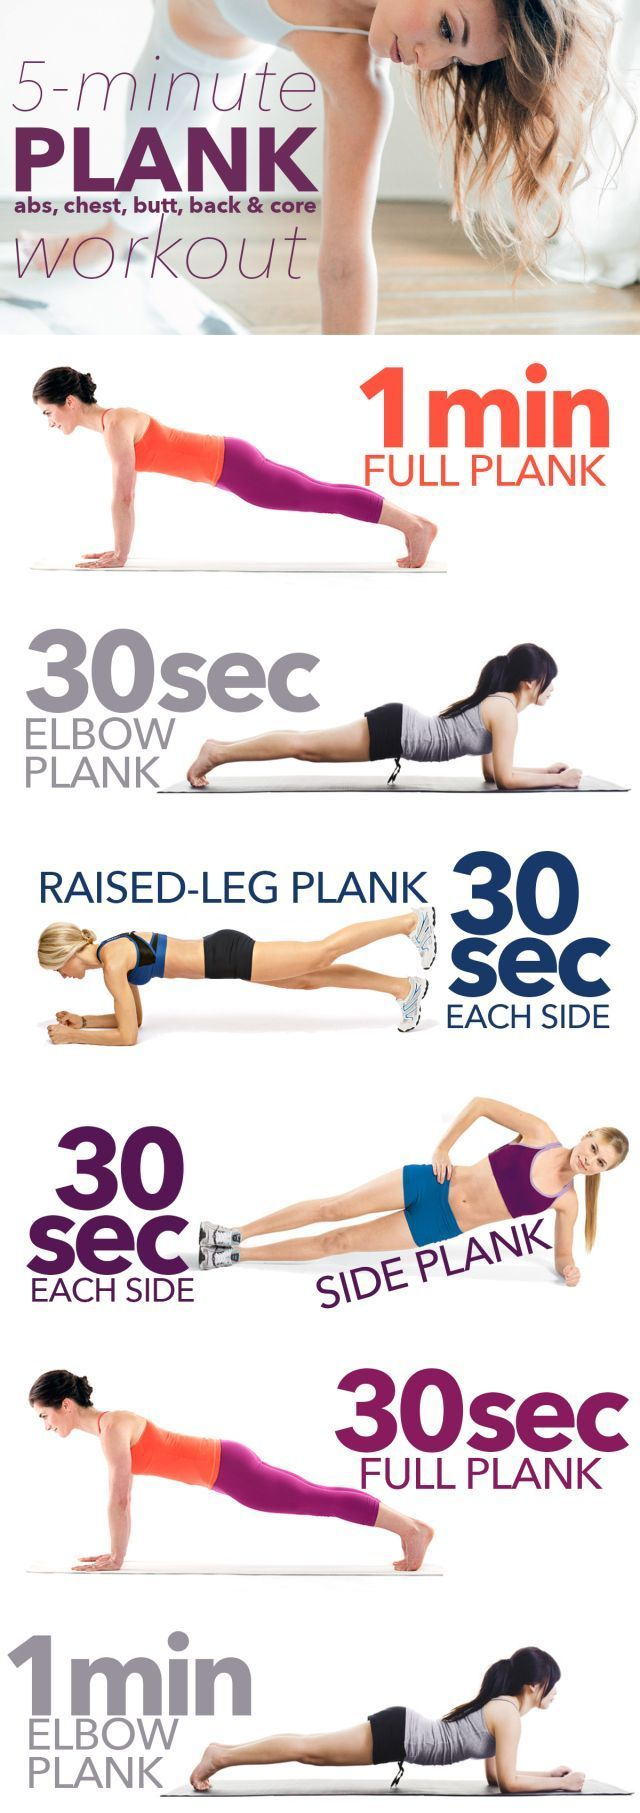 Below are 9 amazing and different ab workouts that you can use to target different areas of your core, so you can mix and match your workouts and keep them fun and challenging with different levels of intensity. Try one out at the end of your workout today and see if you like it! Enjoy!